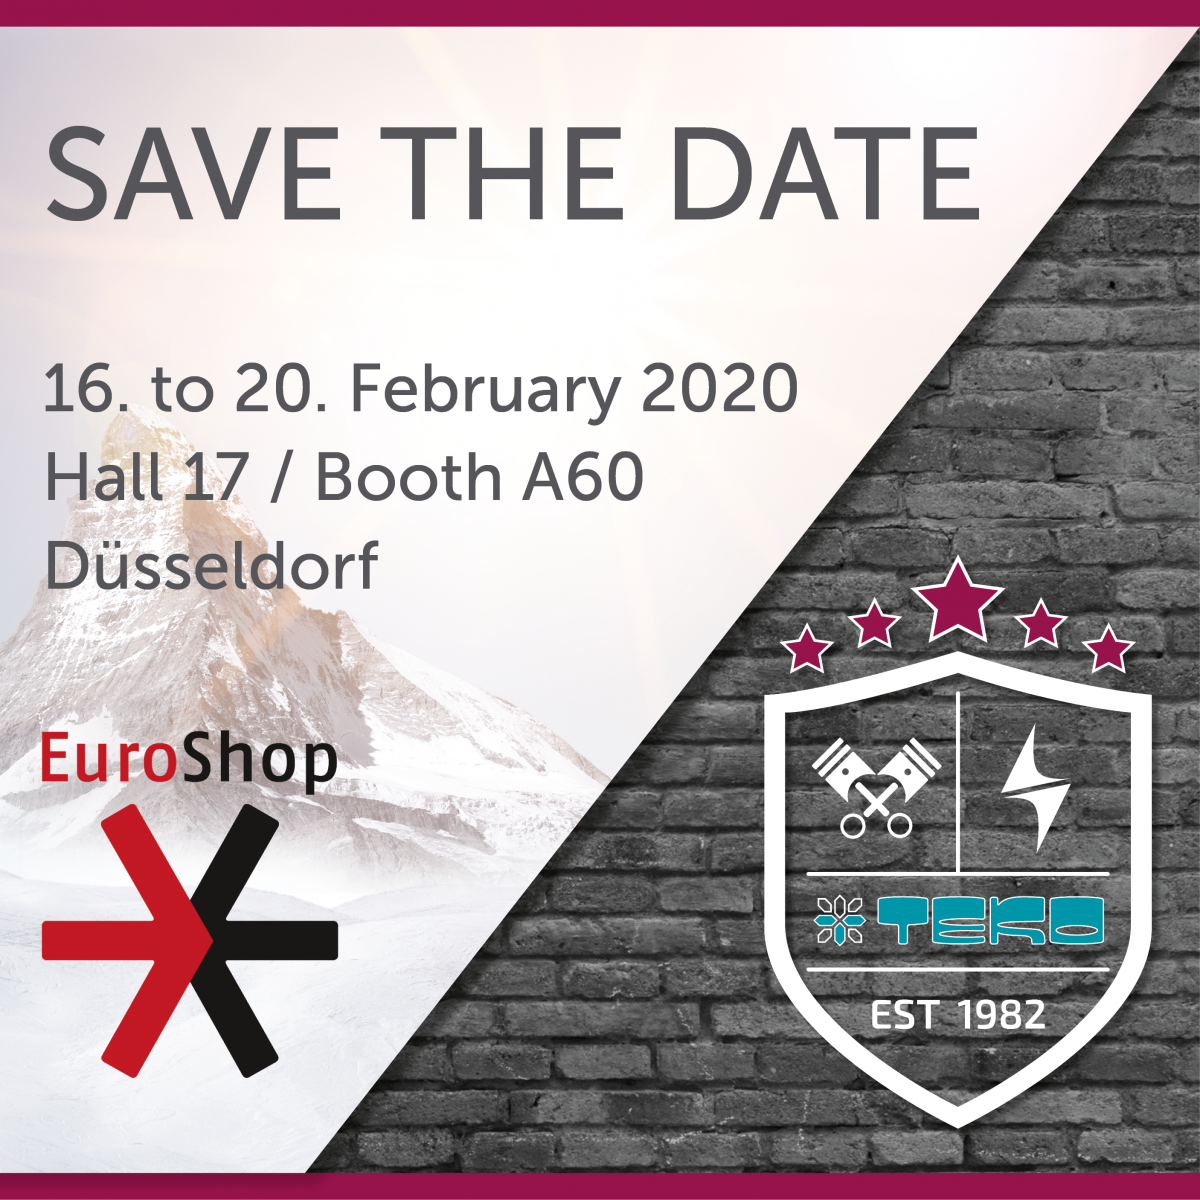 teko news save the date euroshop 2019 en 6750x675 1 - SAVE THE DATE - Euroshop 2020